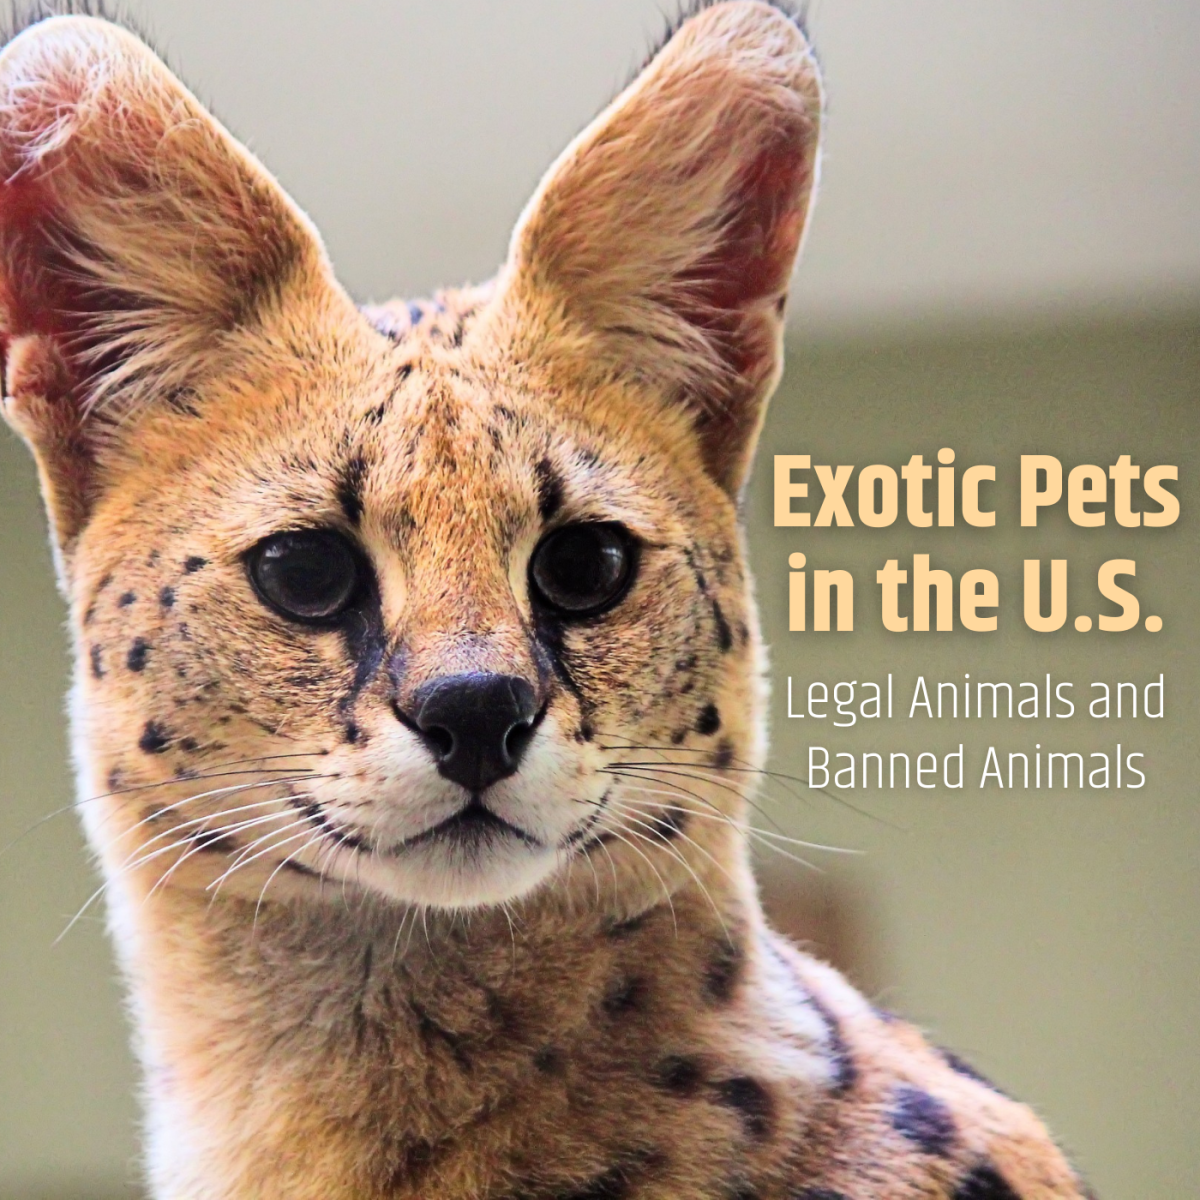 Regulations for exotic pets, such as this serval, vary from state to state.